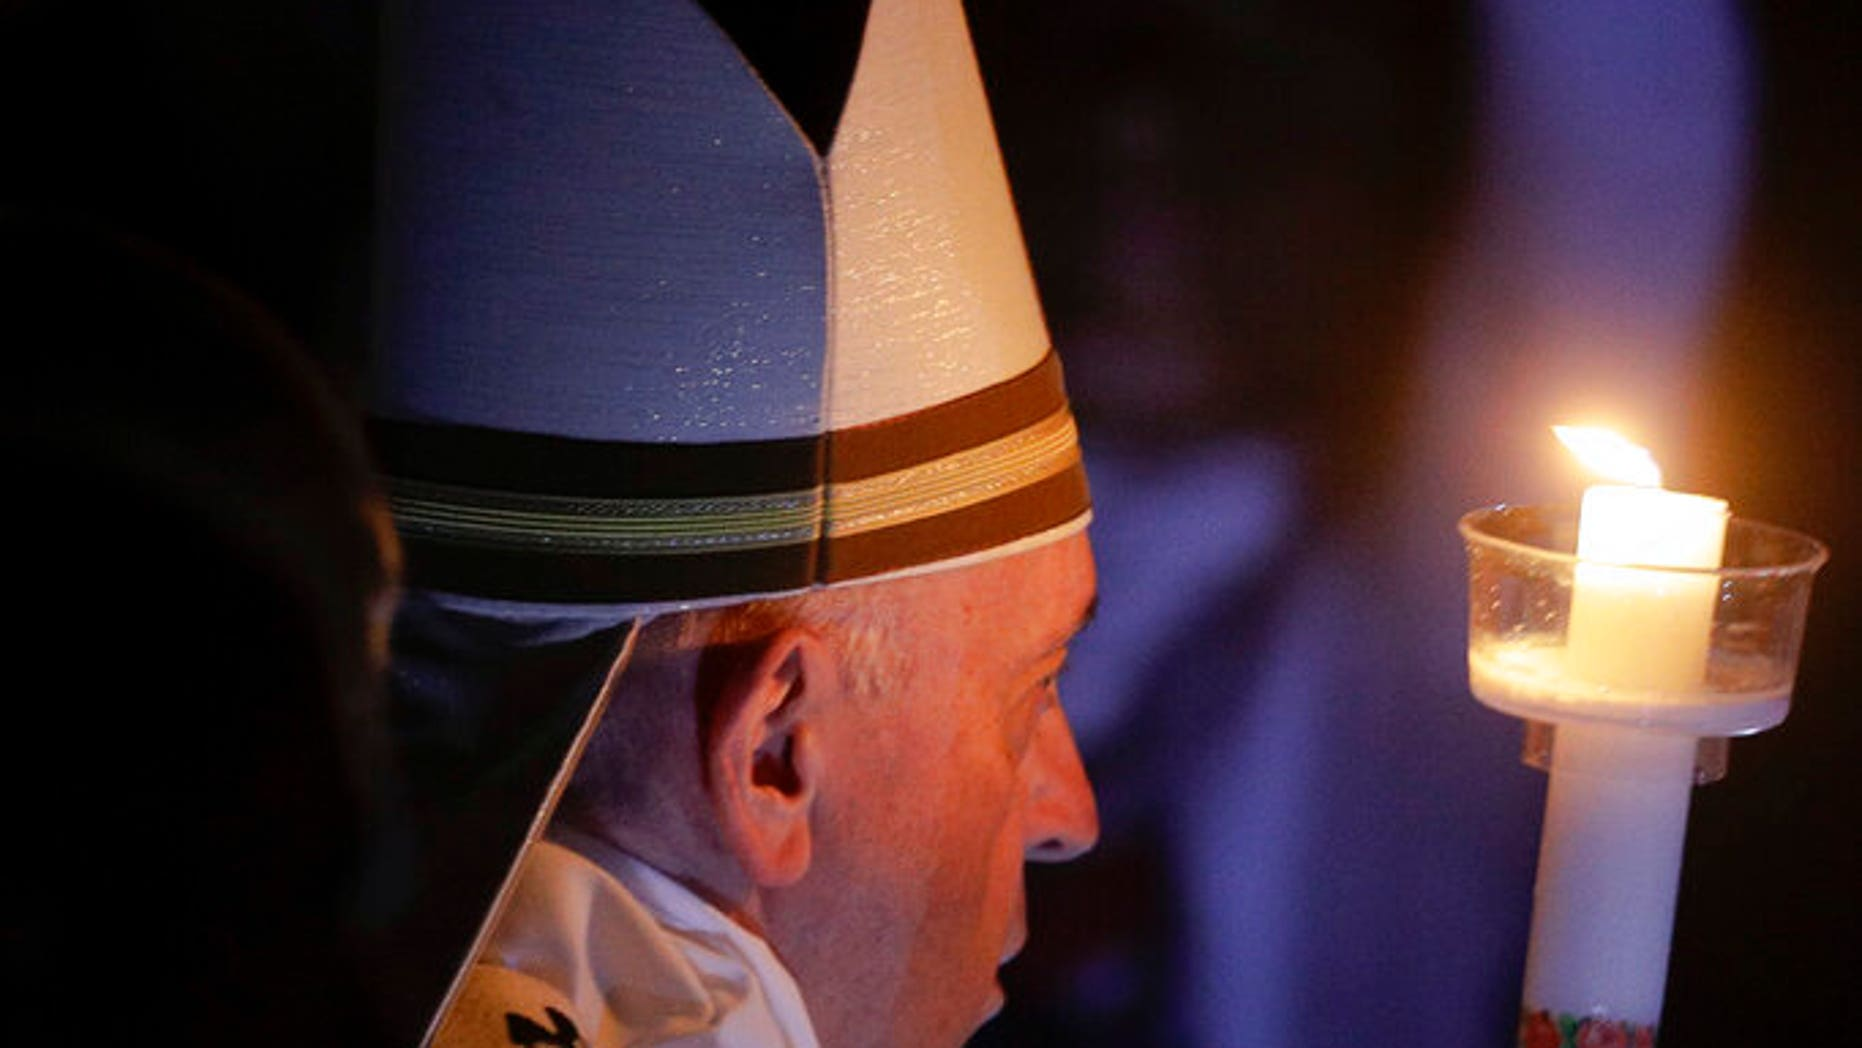 """Pope Francis holds a candle when he presides over a solemn Easter devil ceremony in St. Peter's Basilica in the Vatican Saturday, April 21<div class=""""e3lan e3lan-in-post1""""><script async src=""""//pagead2.googlesyndication.com/pagead/js/adsbygoogle.js""""></script> <!-- Text_Image --> <ins class=""""adsbygoogle""""      style=""""display:block""""      data-ad-client=""""ca-pub-6192903739091894""""      data-ad-slot=""""3136787391""""      data-ad-format=""""auto""""      data-full-width-responsive=""""true""""></ins> <script> (adsbygoogle = window.adsbygoogle 